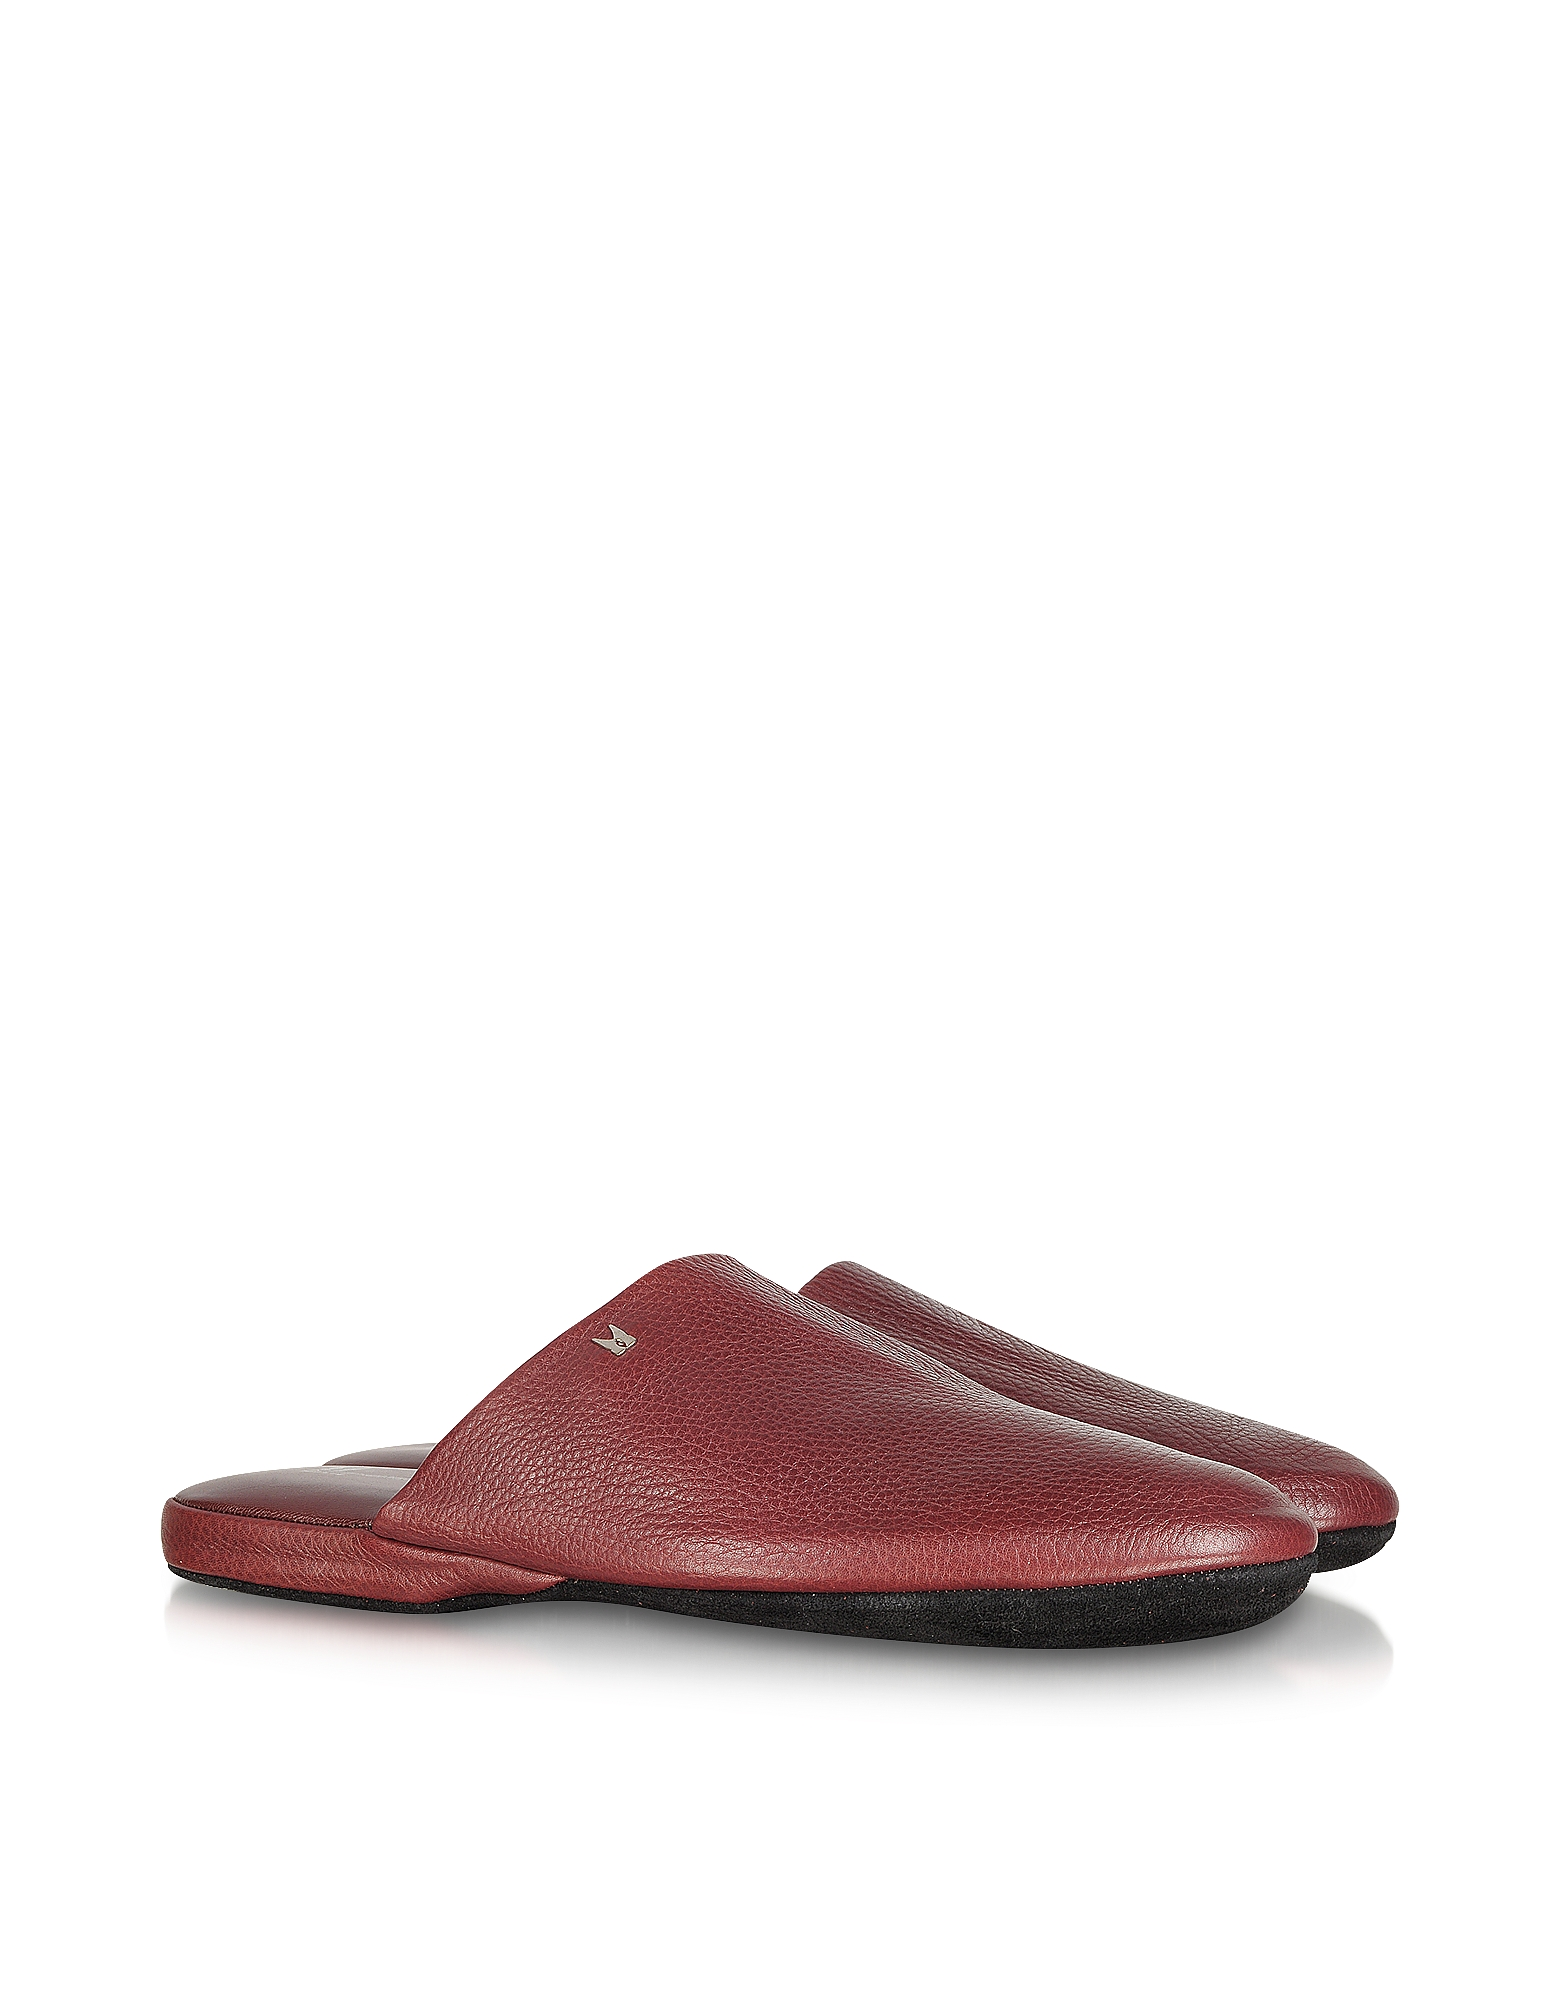 Moreschi Shoes, Amerigo - Burgundy Nappa Leather Travel Slippers w/Case